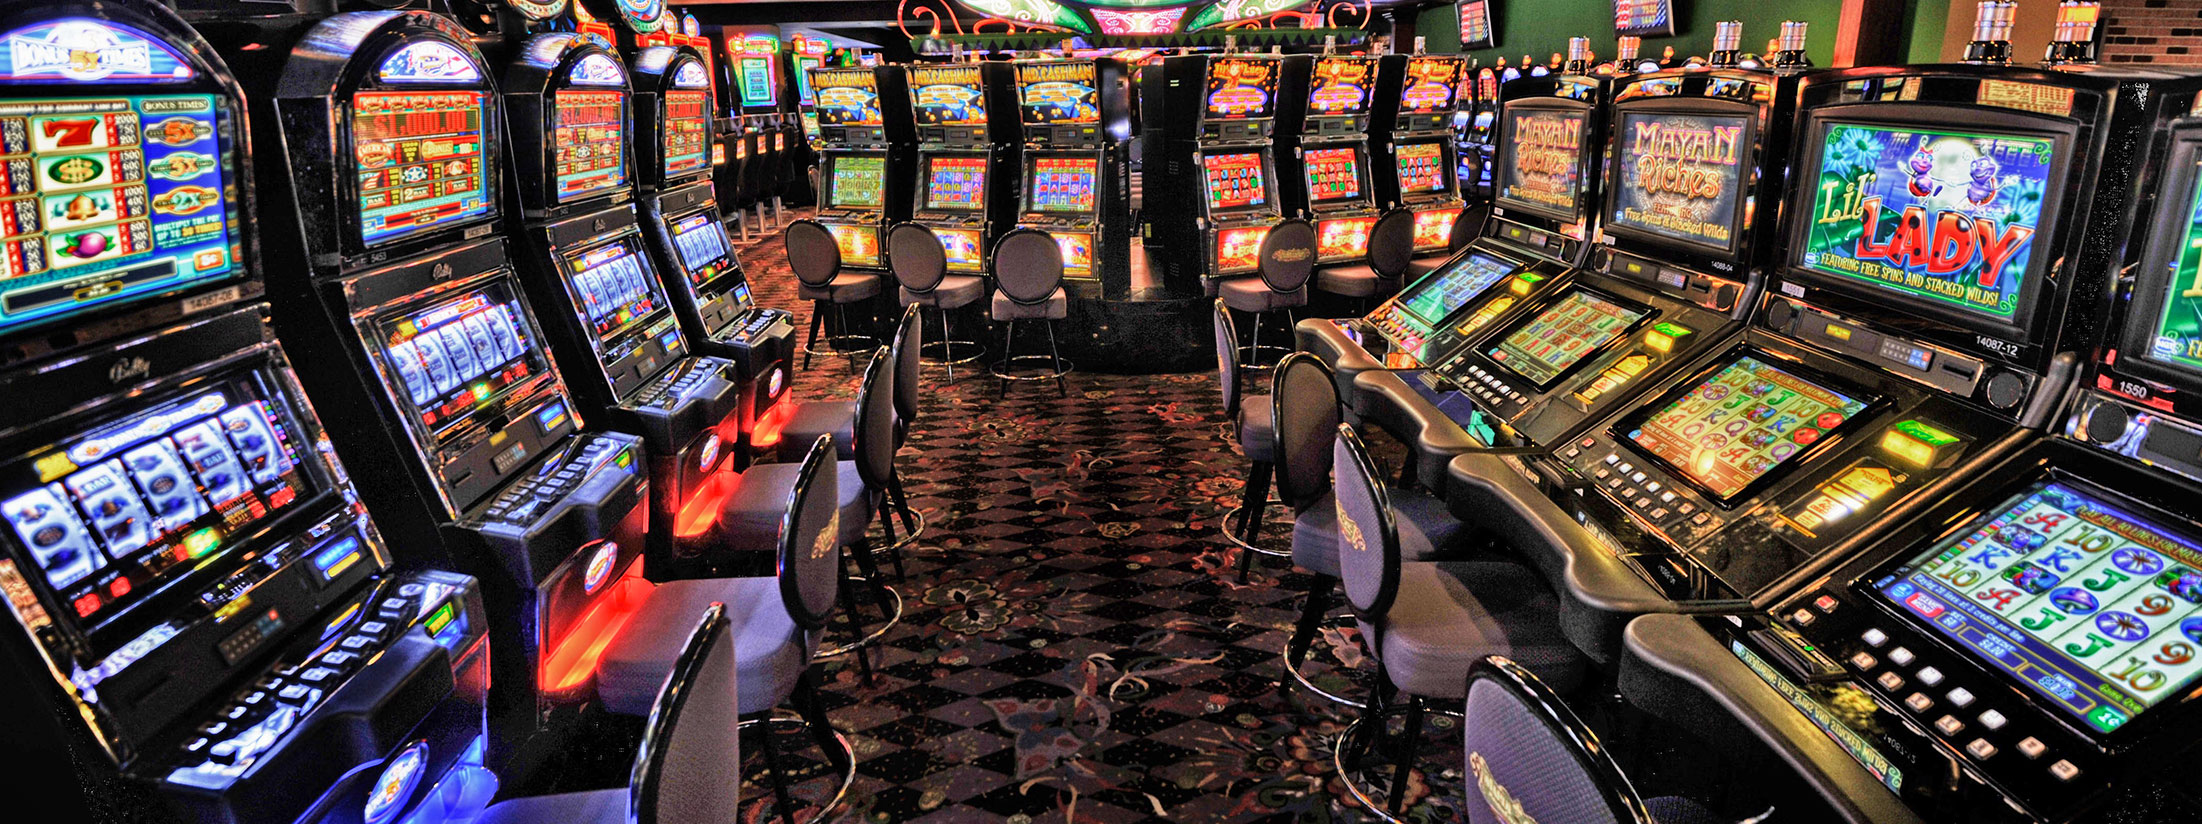 How to build your own slot machine